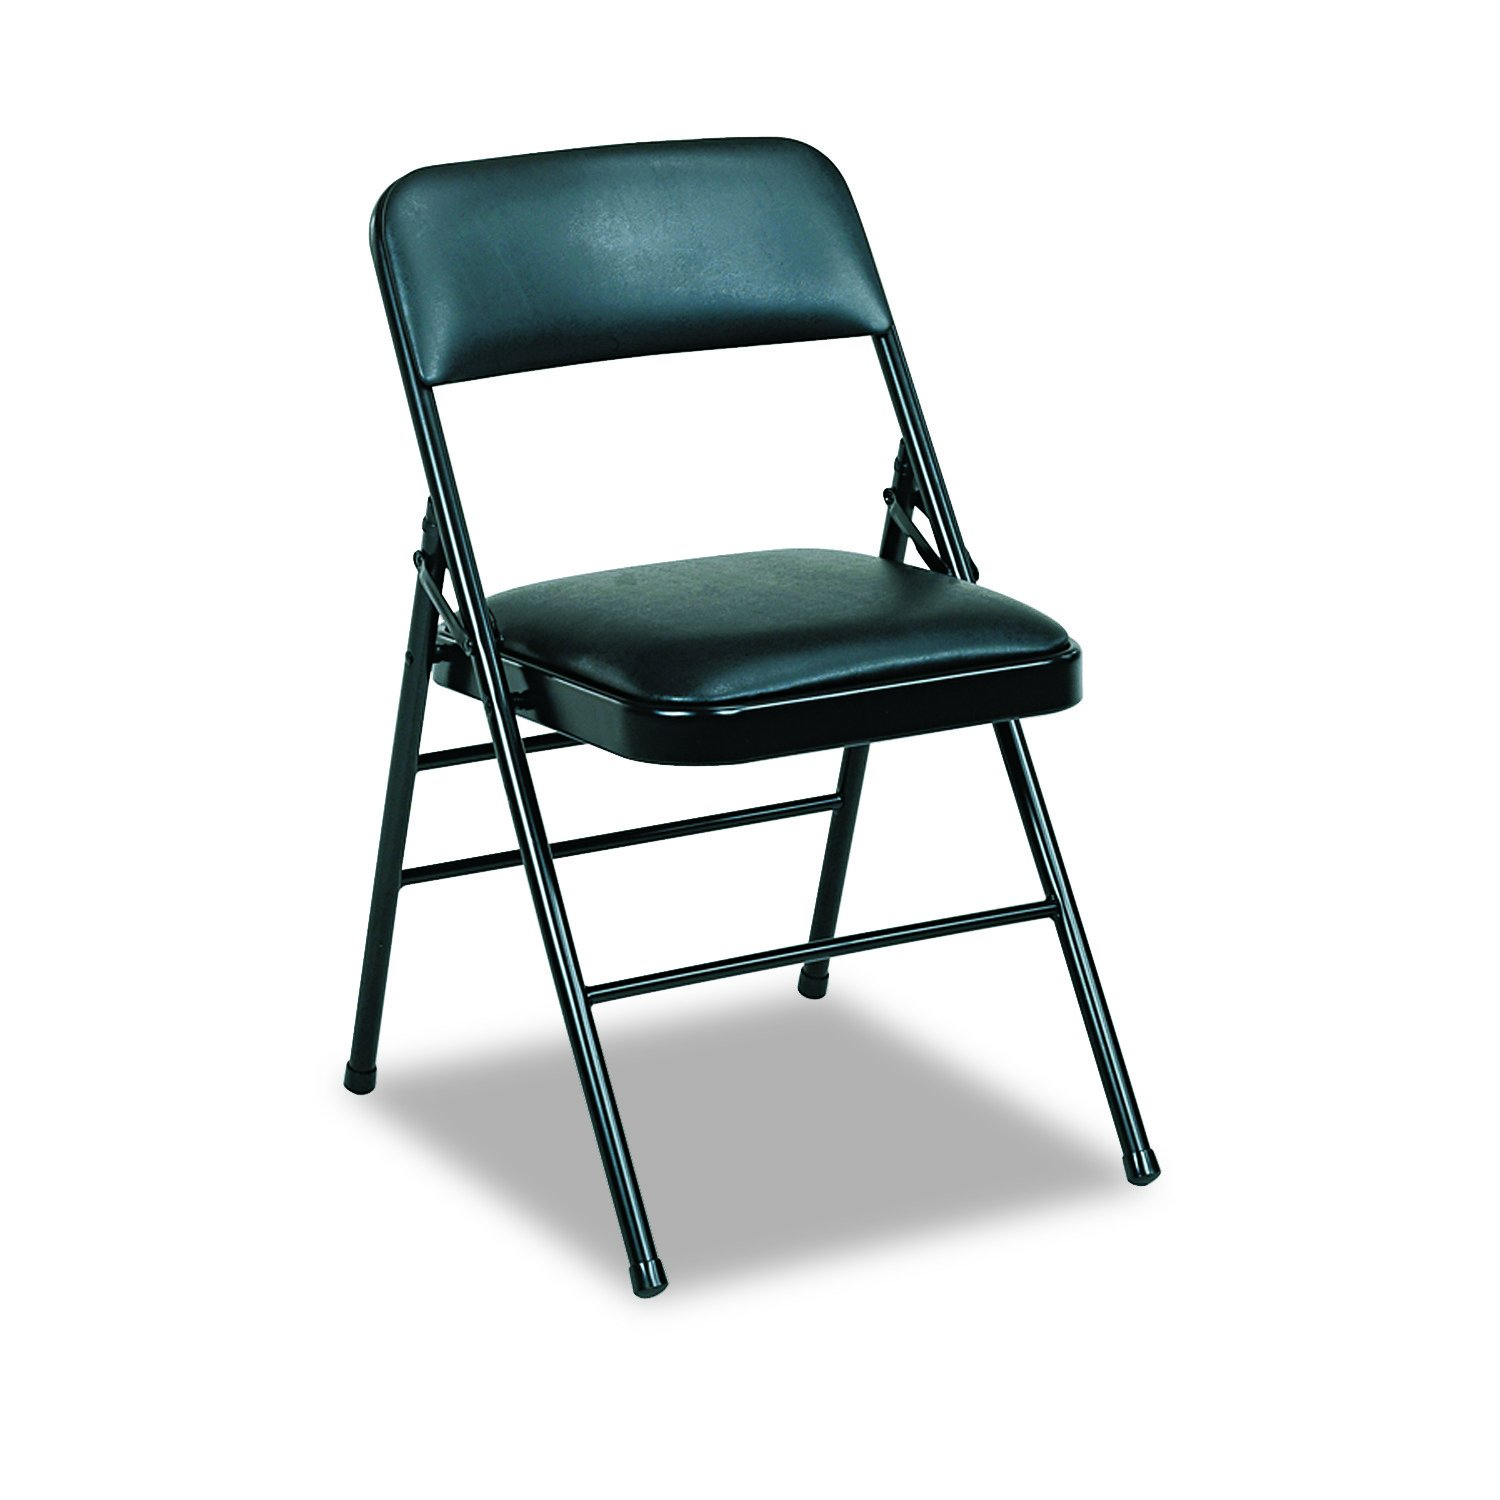 Cosco 608830054 Deluxe Vinyl Padded Seat & Back Folding Chairs, Black (Case of 4)